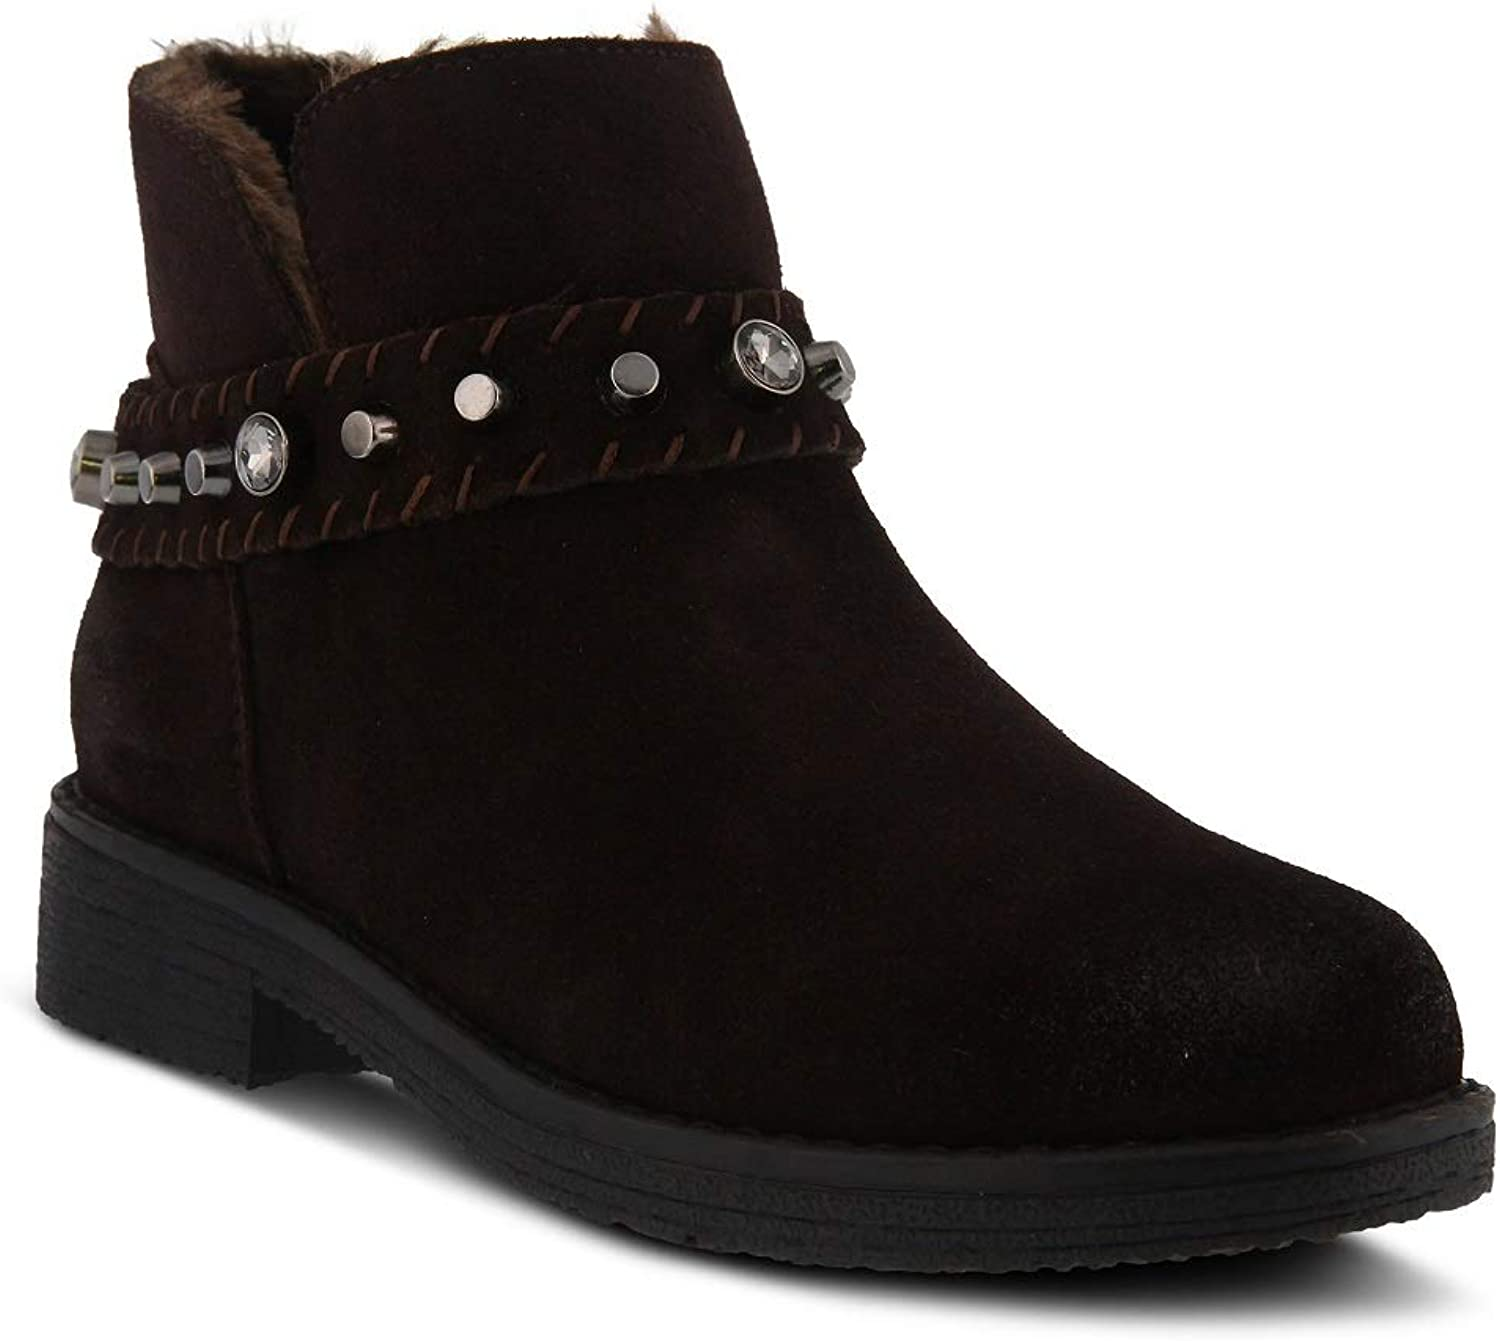 Spring Step Women's Rodea Bootie   color Chocolate Brown   Suede Bootie